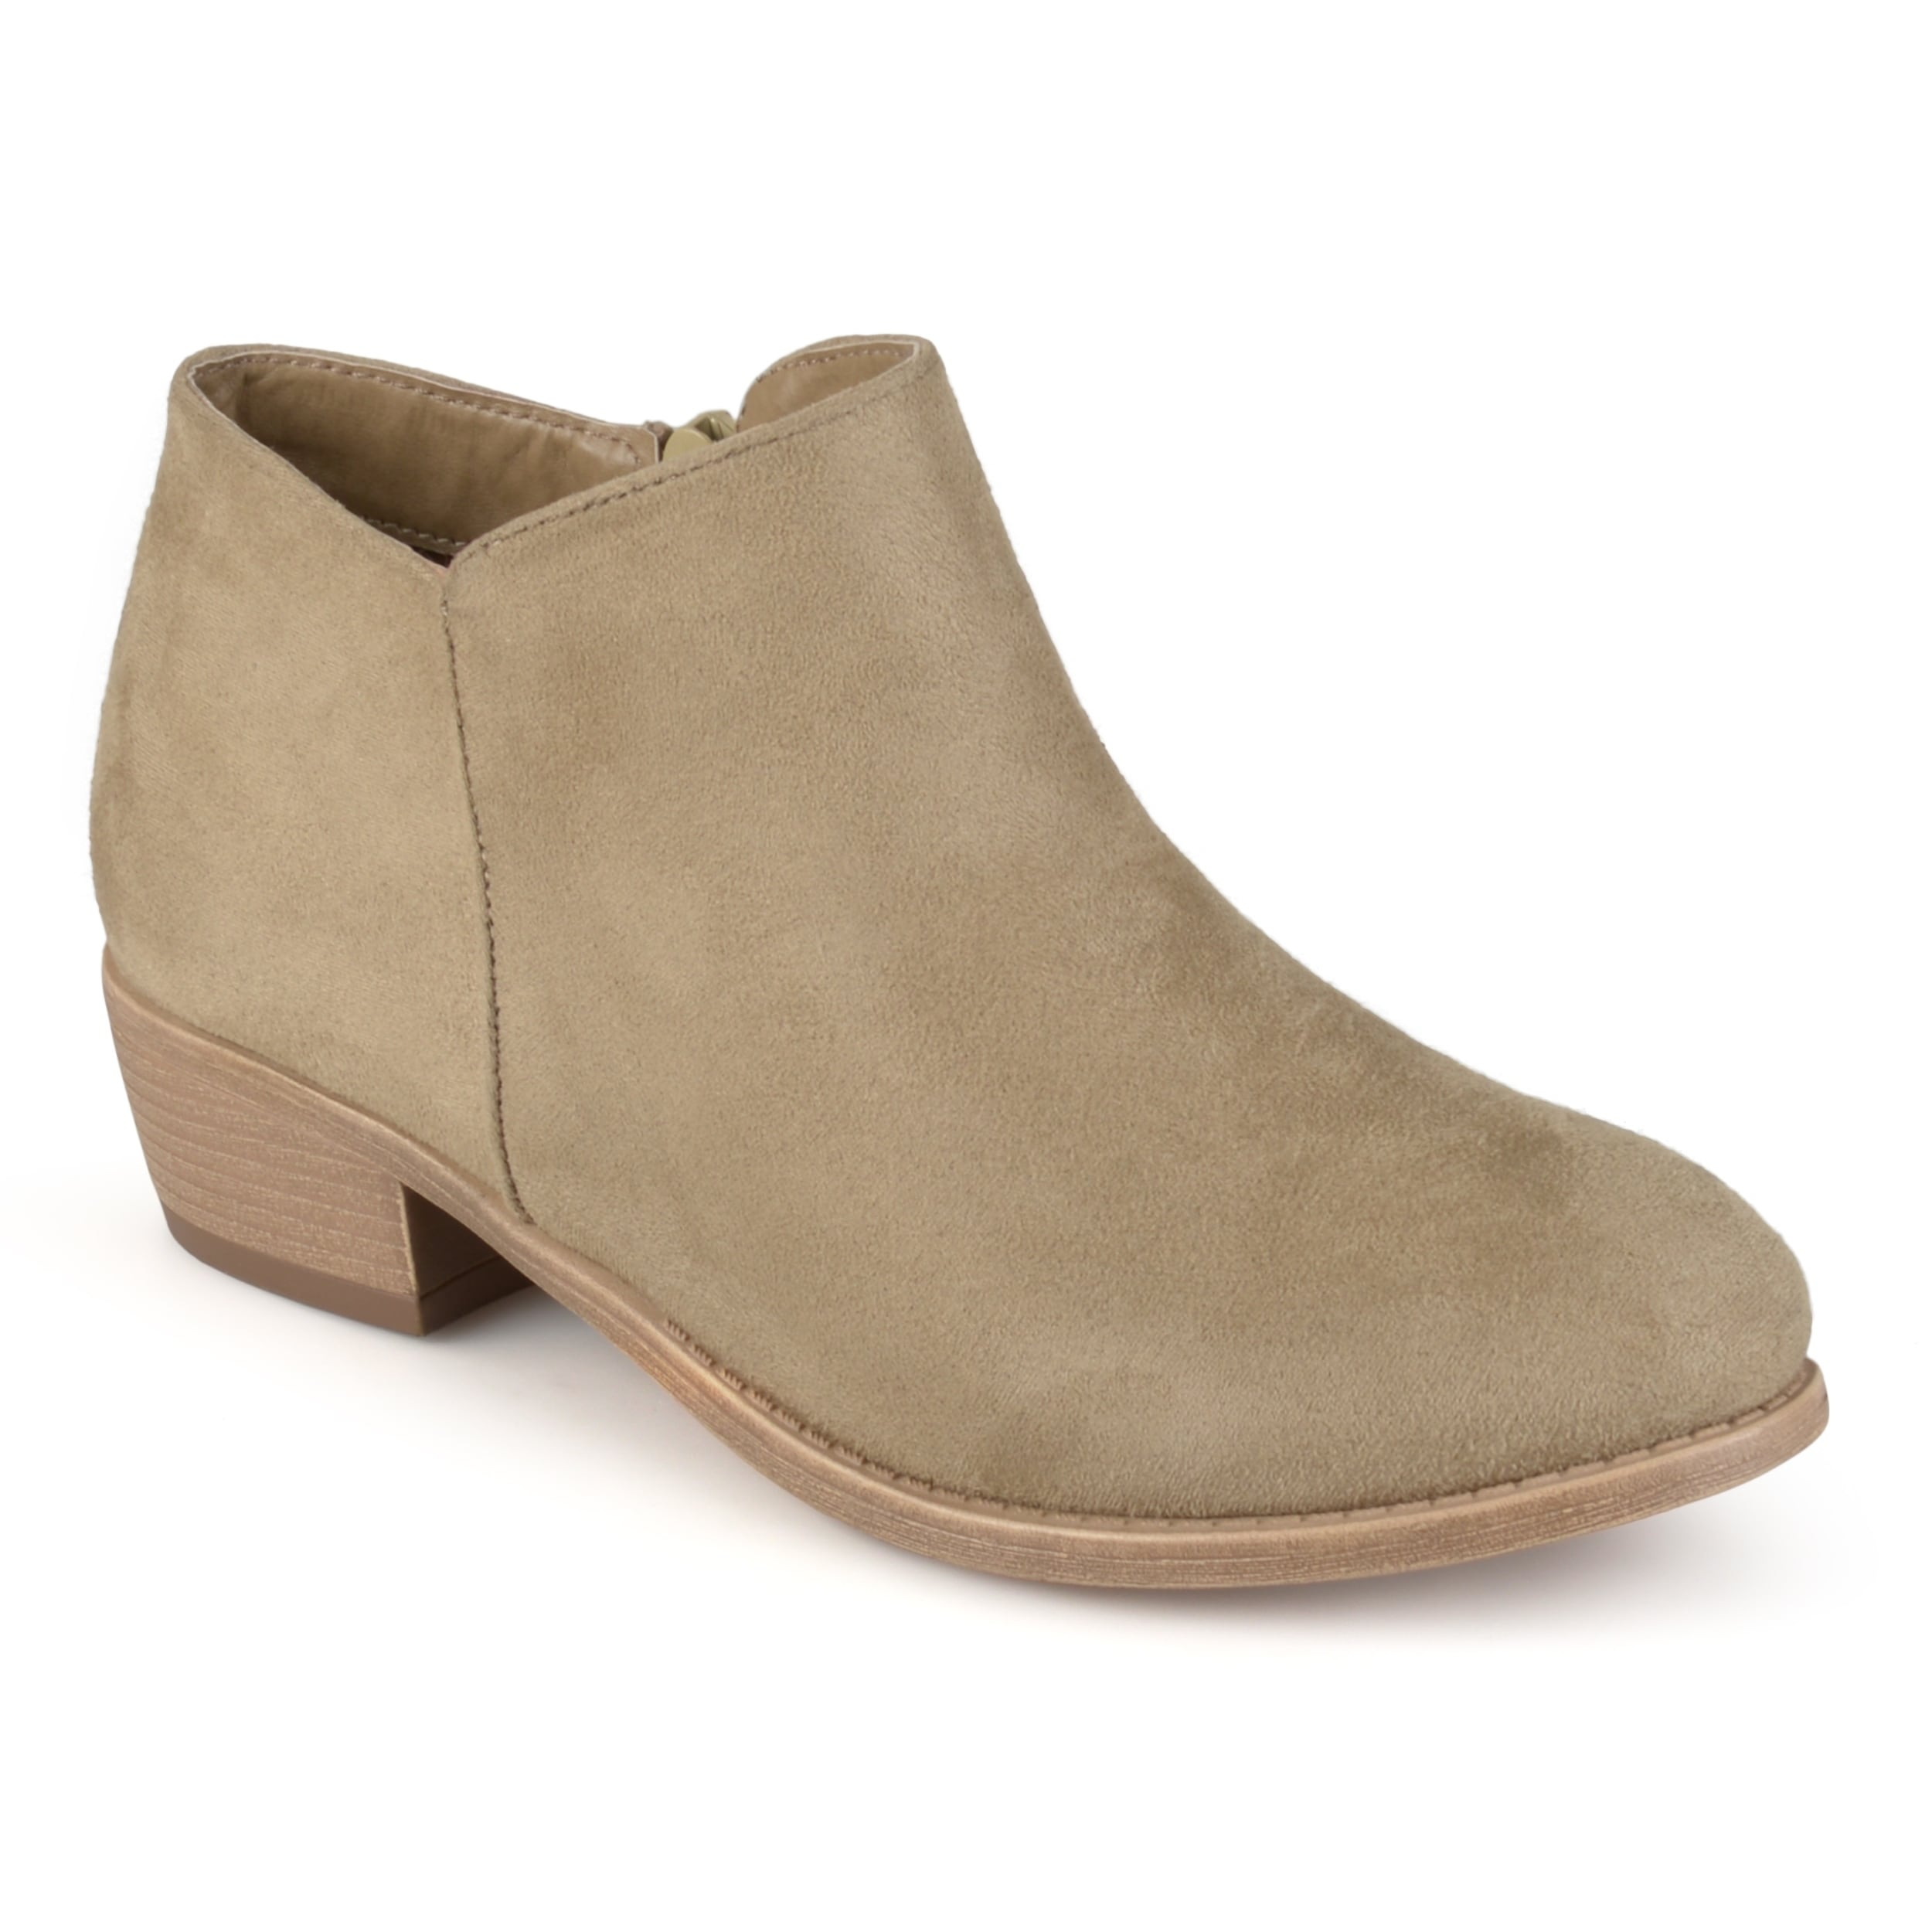 e7c238840c4f24 Shop Journee Collection Women's 'Sun' Faux Suede Heeled Booties ...